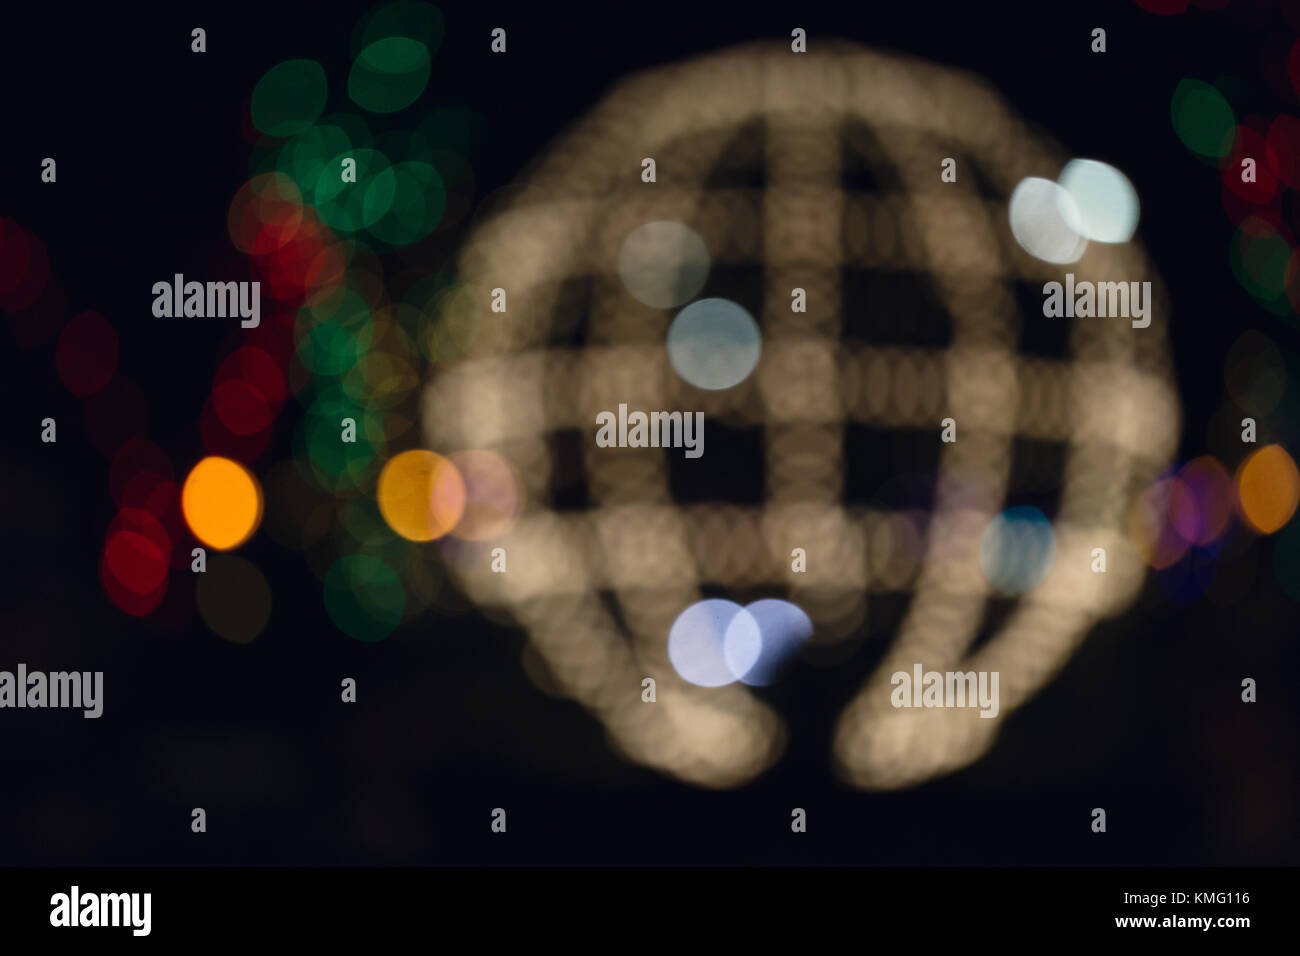 Abstract illuminated christmas sphere with various color background. - Stock Image